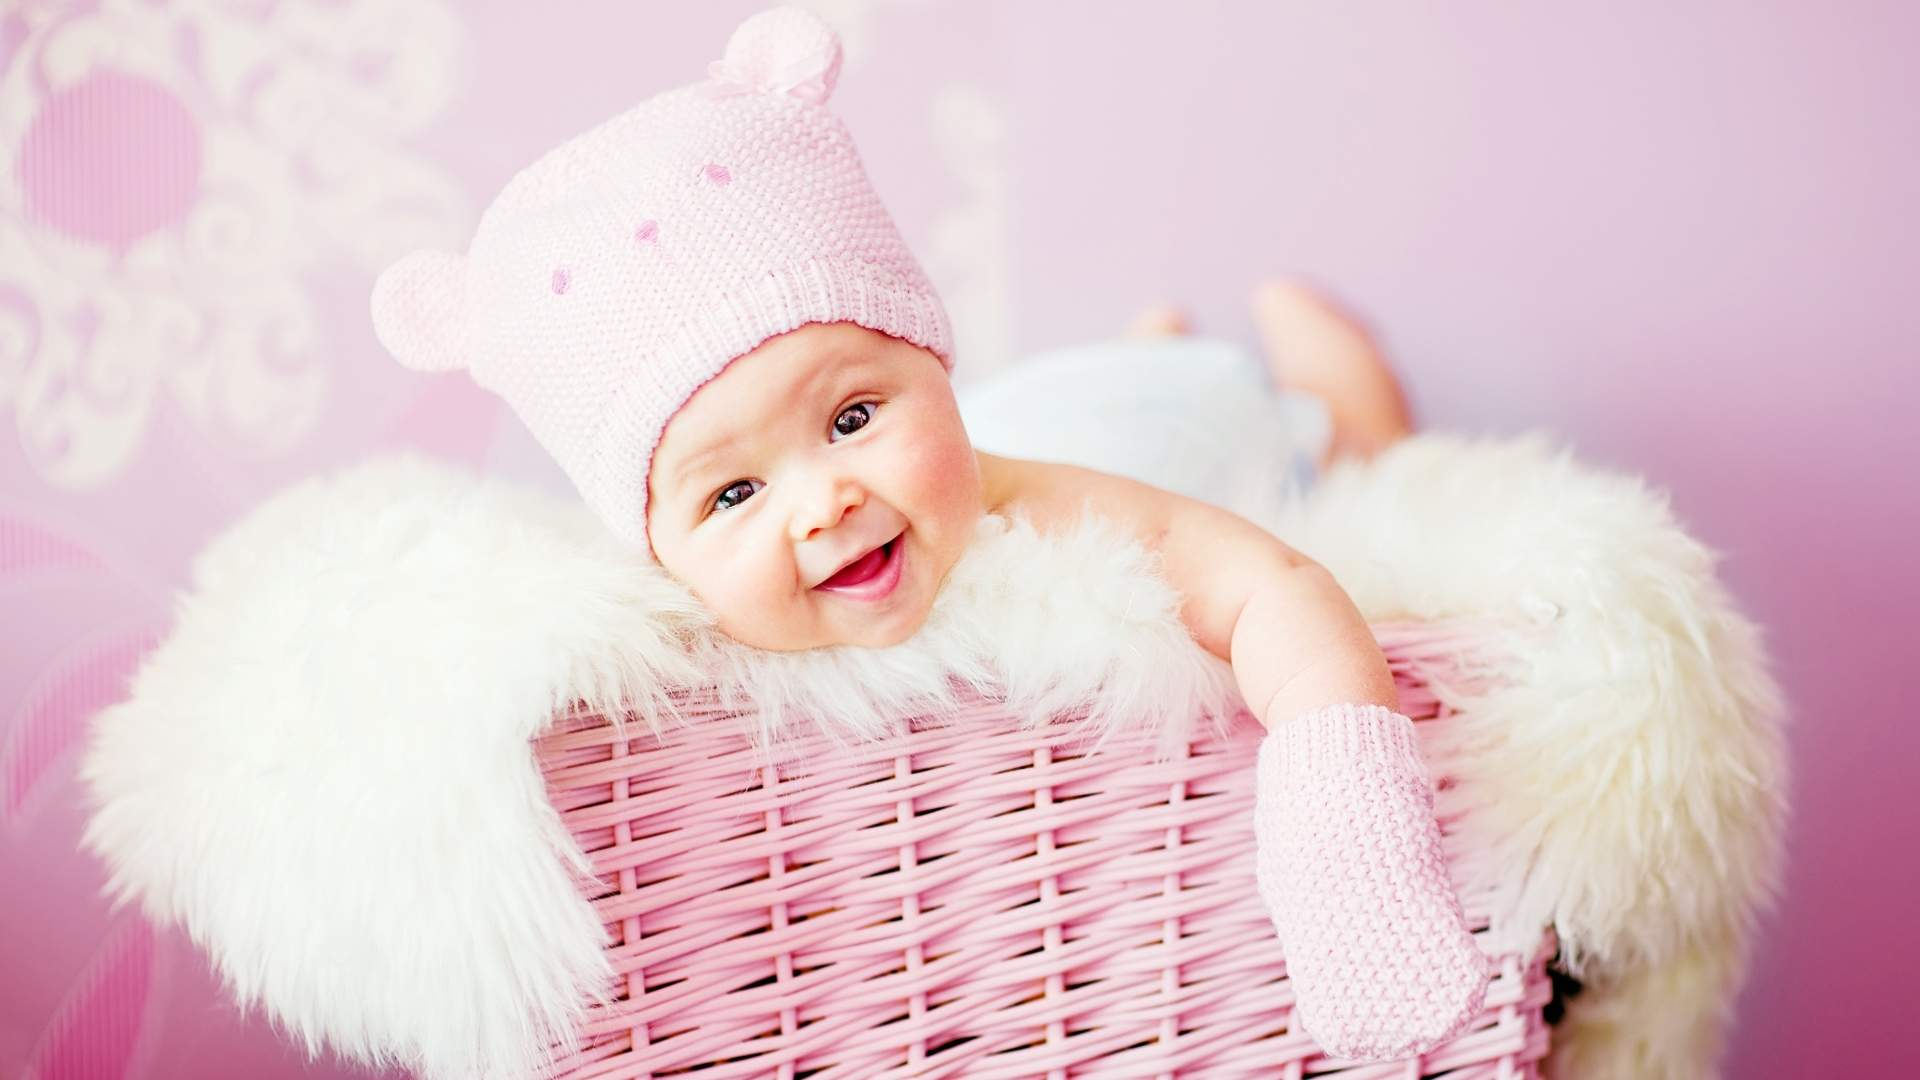 Baby Wallpaper Pictures Of Cute Babies Best Collection